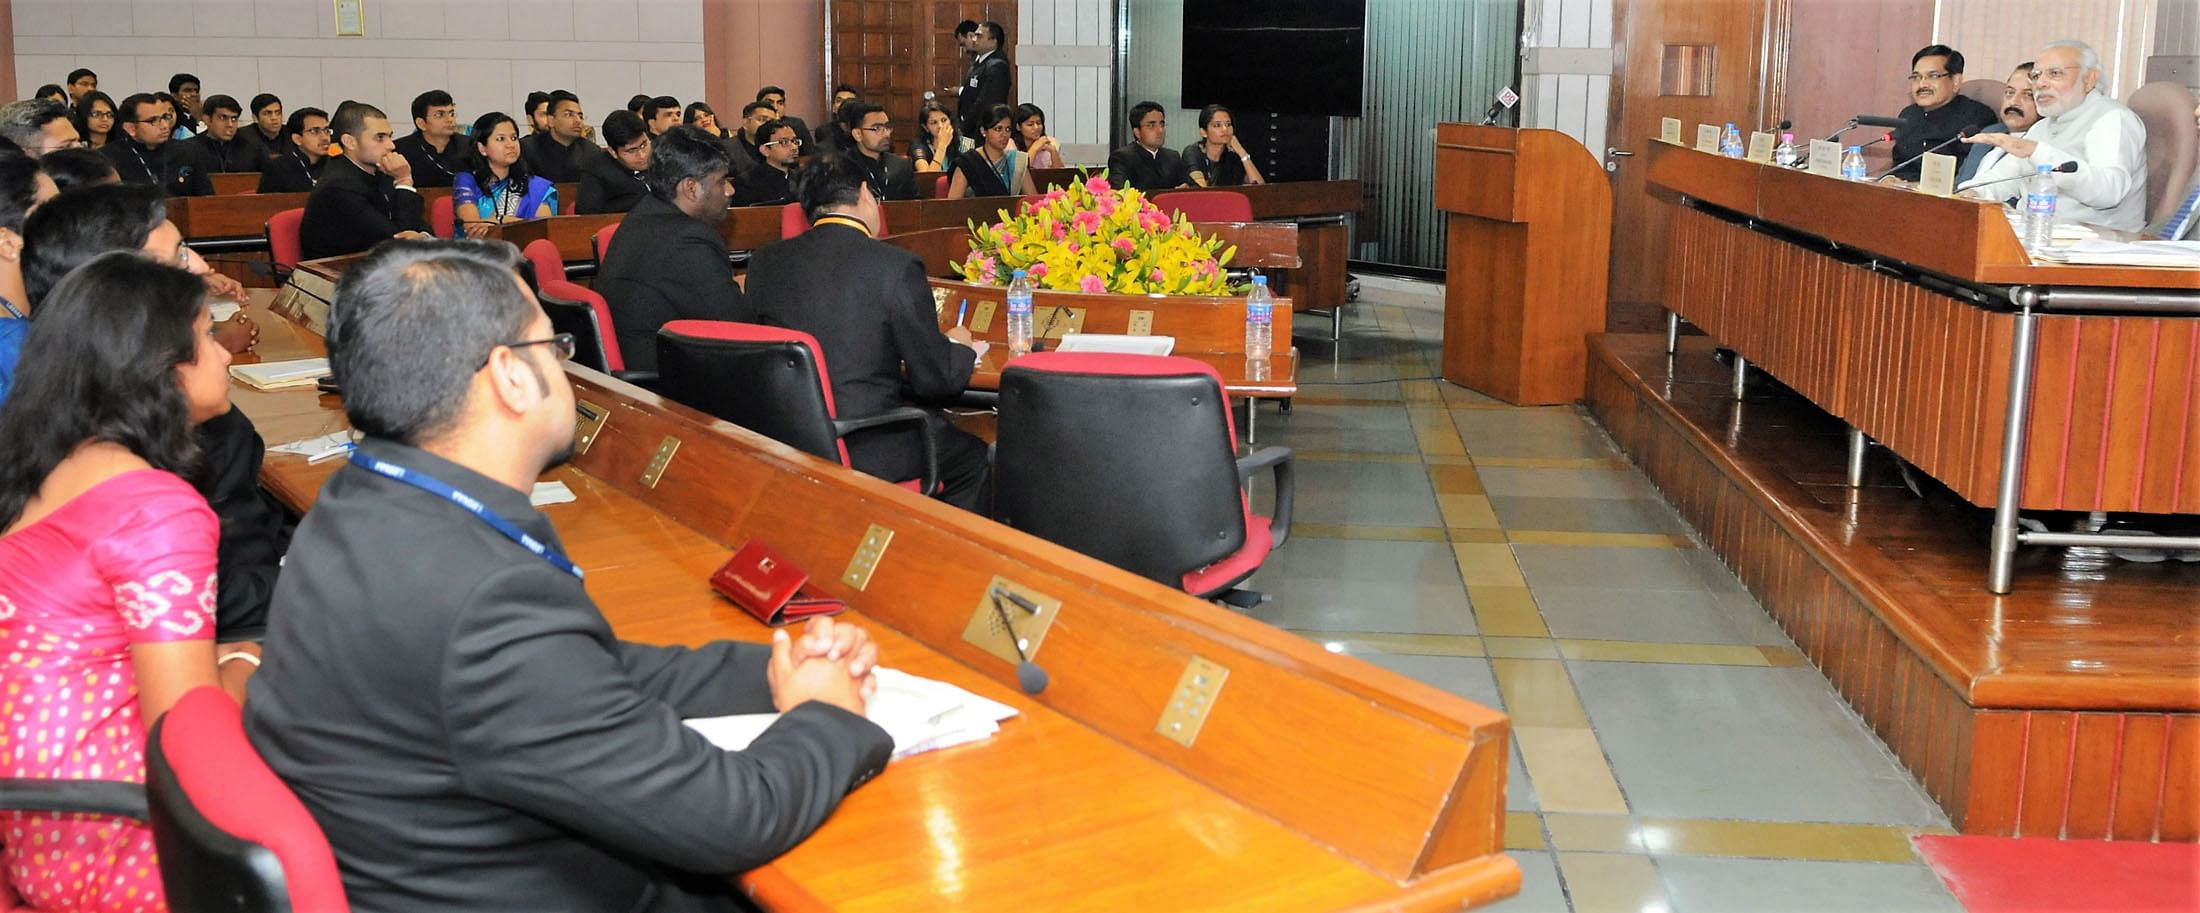 Prime Minister Narendra Modi interacting with the IAS probationers of 2015 batch at Parliament Library, in New Delhi on February 23, 2016. (Source: Wikimedia Commons)